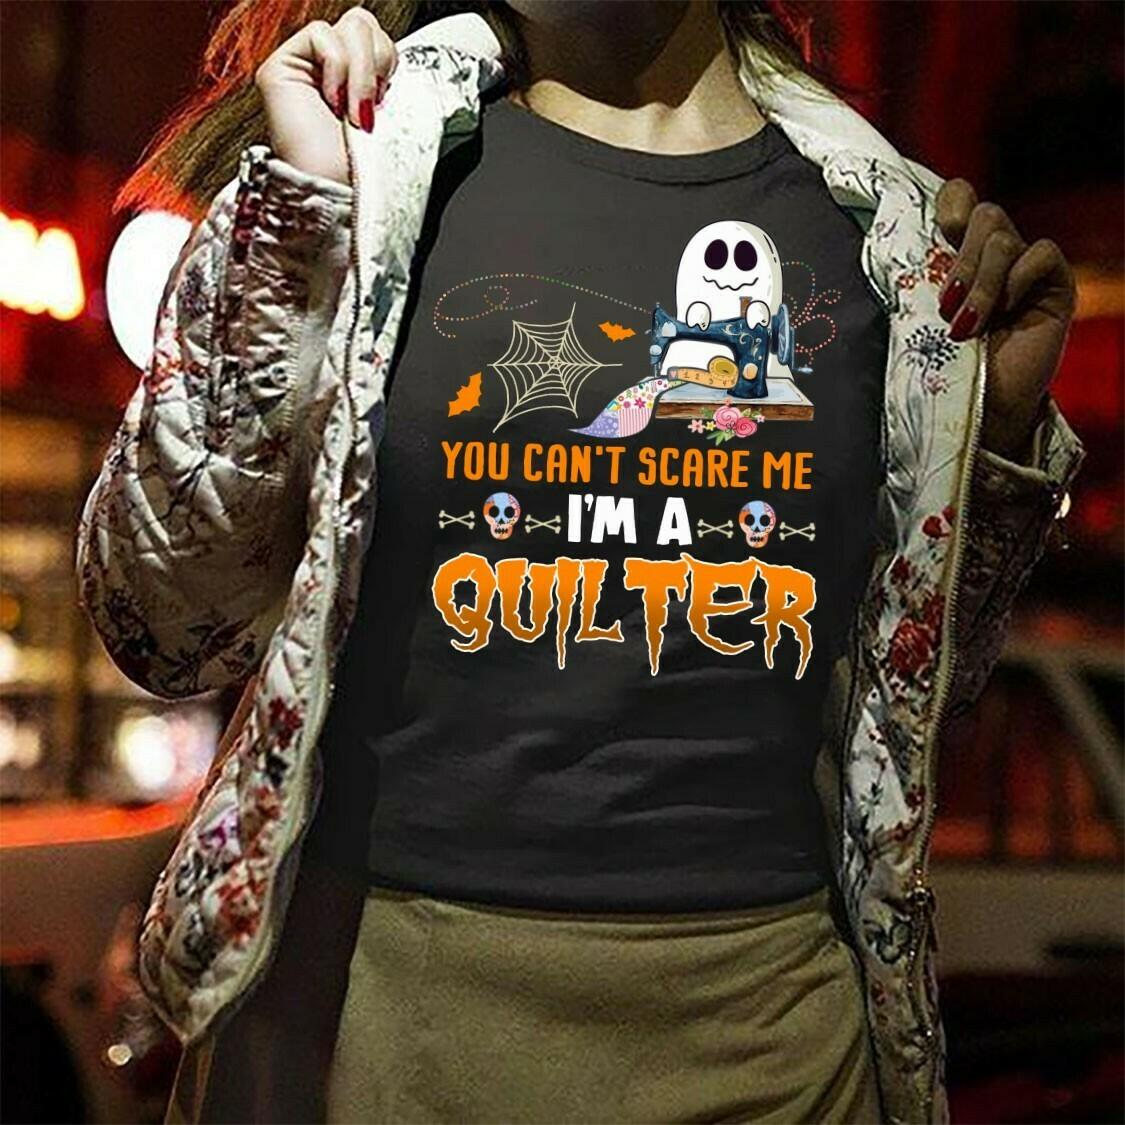 You Can't Scare Me I'm A Quilter - Funny Halloween Little Boo Quilting, Gifts Lovers Quilter Haloween, Quilting T Shirts for Women Long Sleeve Sweatshirt Hoodie Jolly Family Gifts